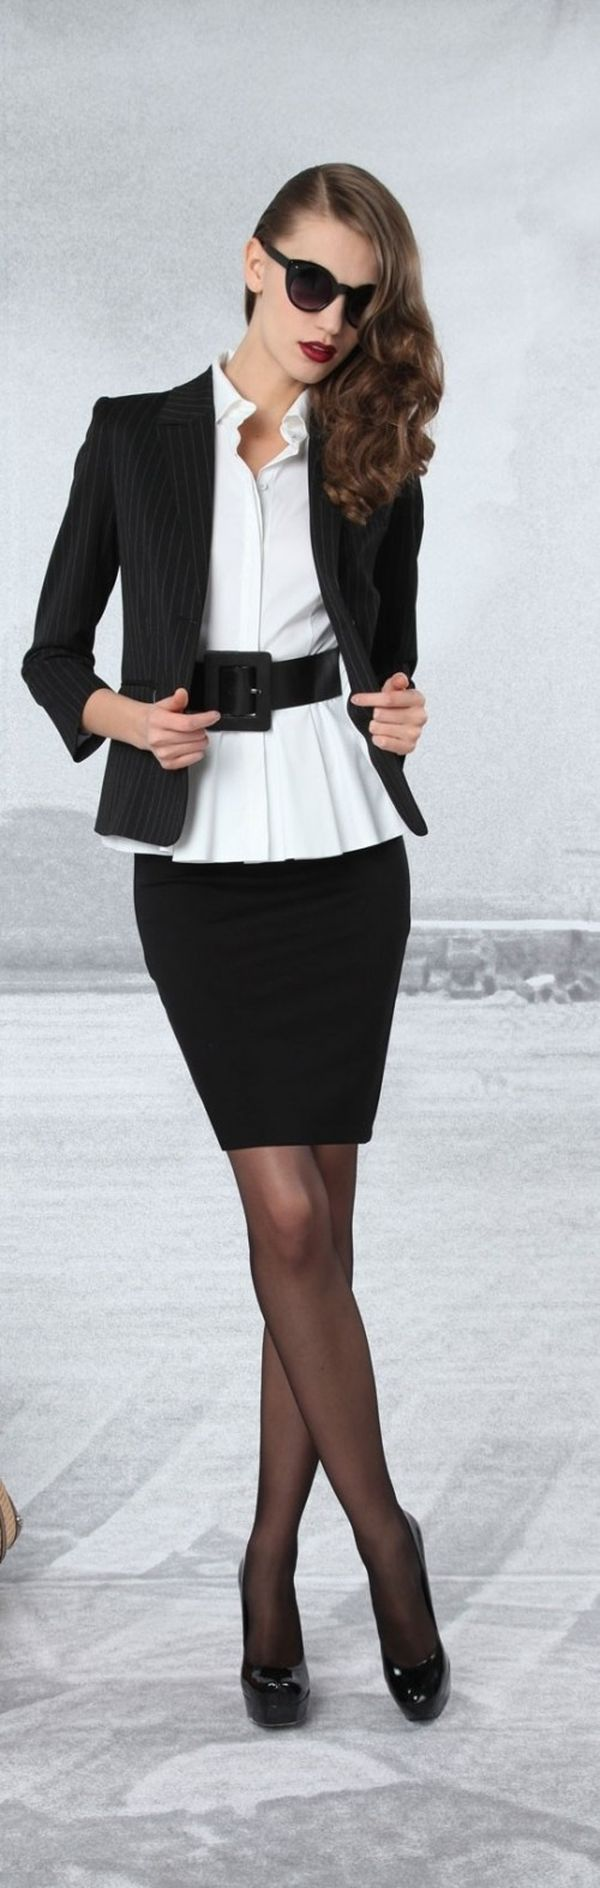 Chic Black And White Outfits To Wear - Exquisite Girl